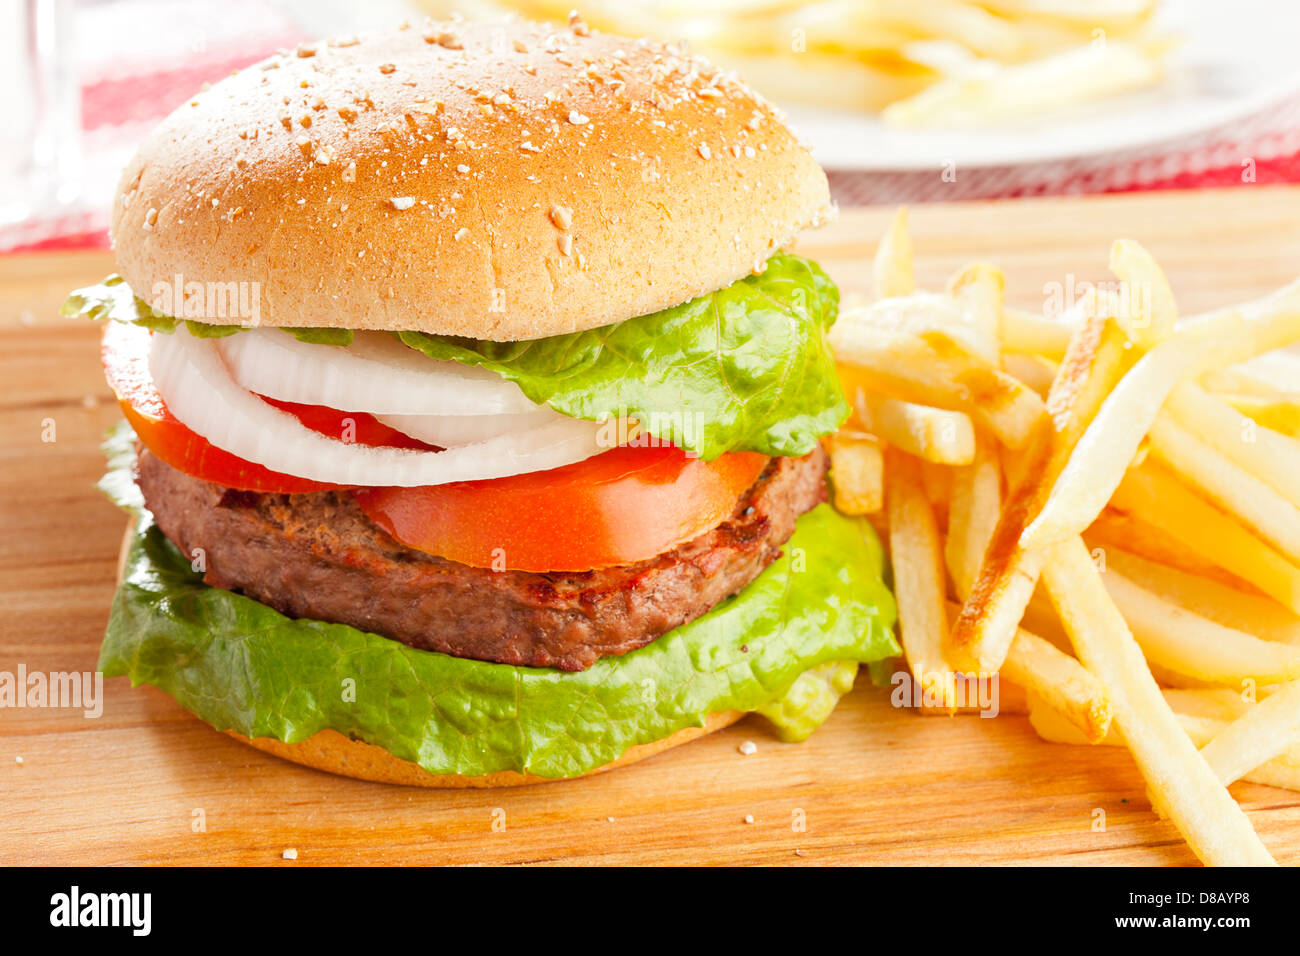 Homemade Organic Hamburger with Lettuce and Tomato - Stock Image